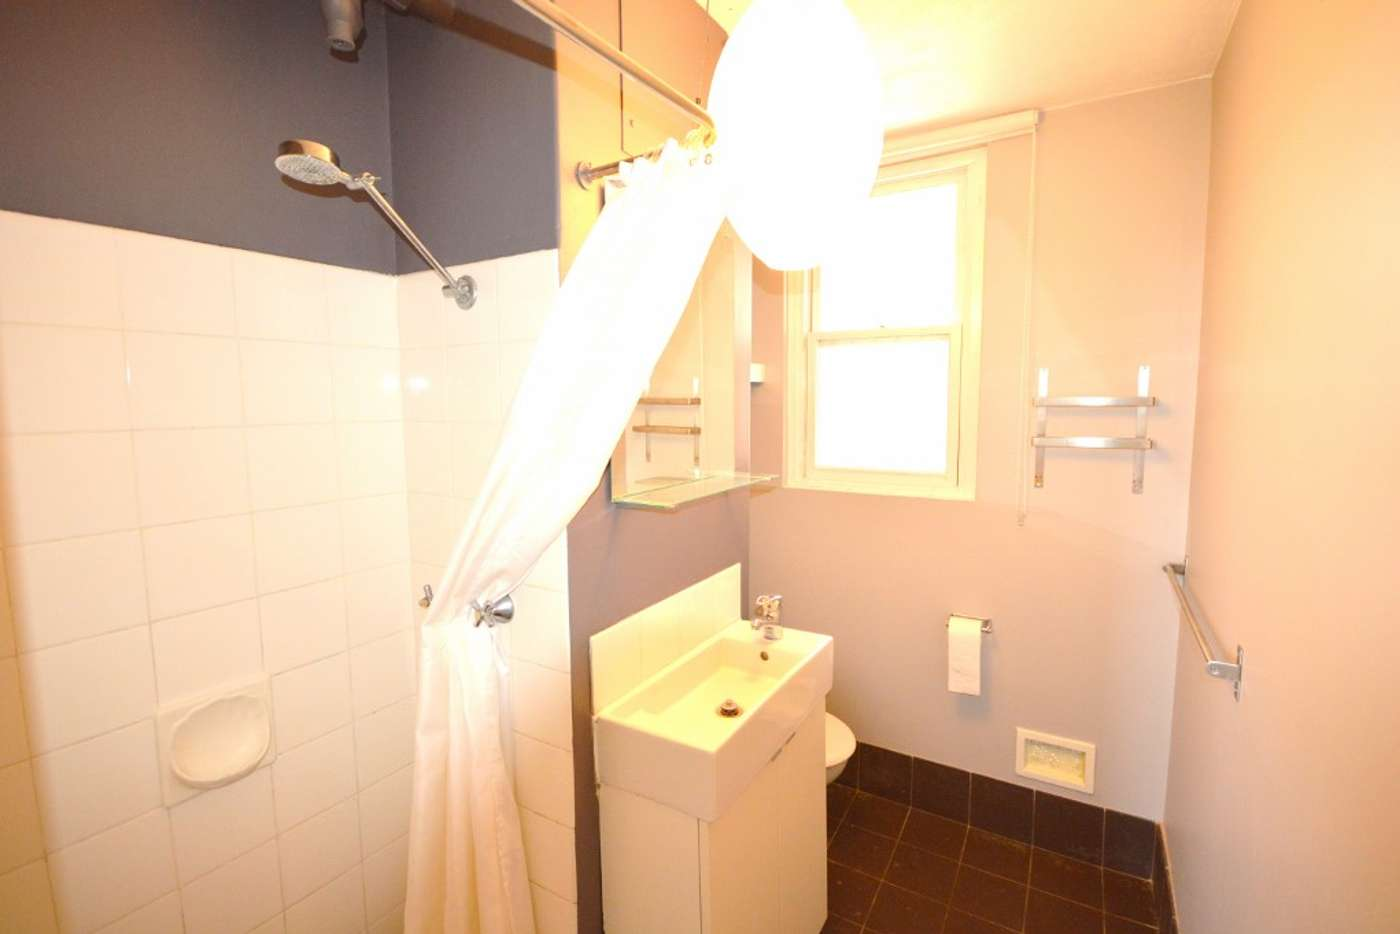 Seventh view of Homely apartment listing, 87/227 Vincent Street, West Perth WA 6005